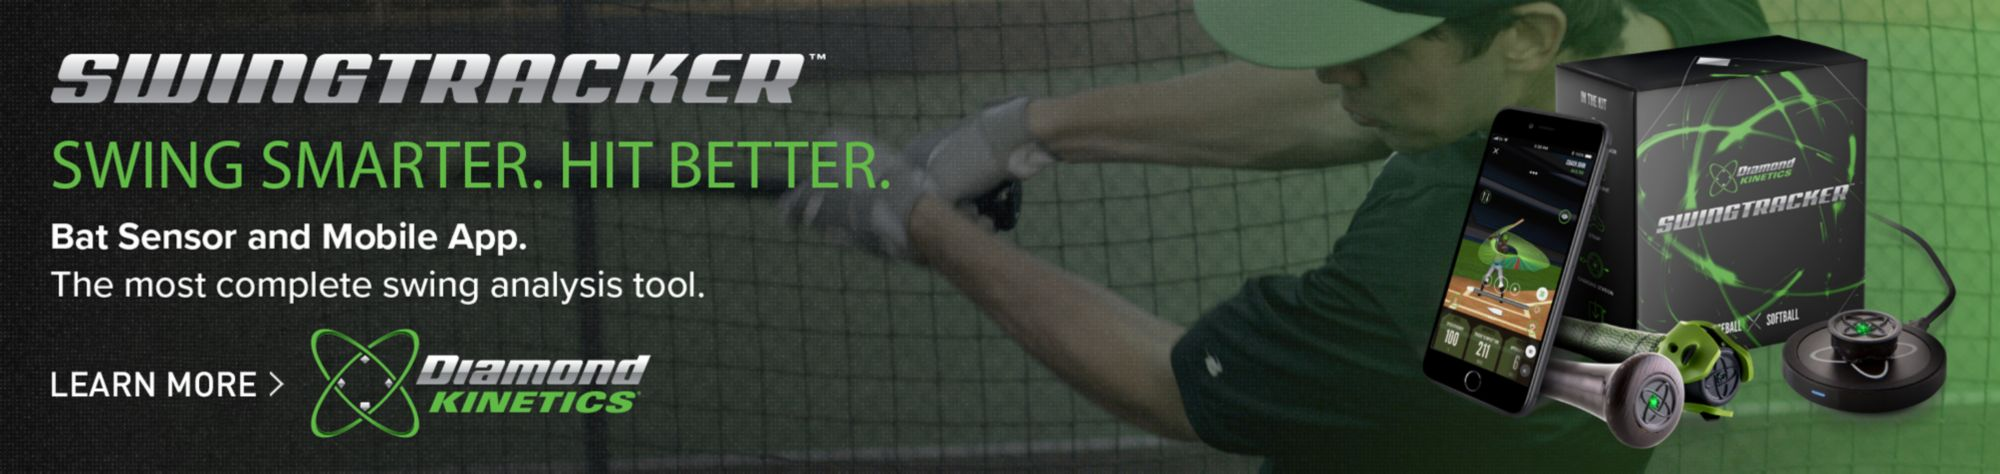 Swingtracker Swing Smarter. Hit Better. Bat Sensor and Mobile App. Diamond Kinetics